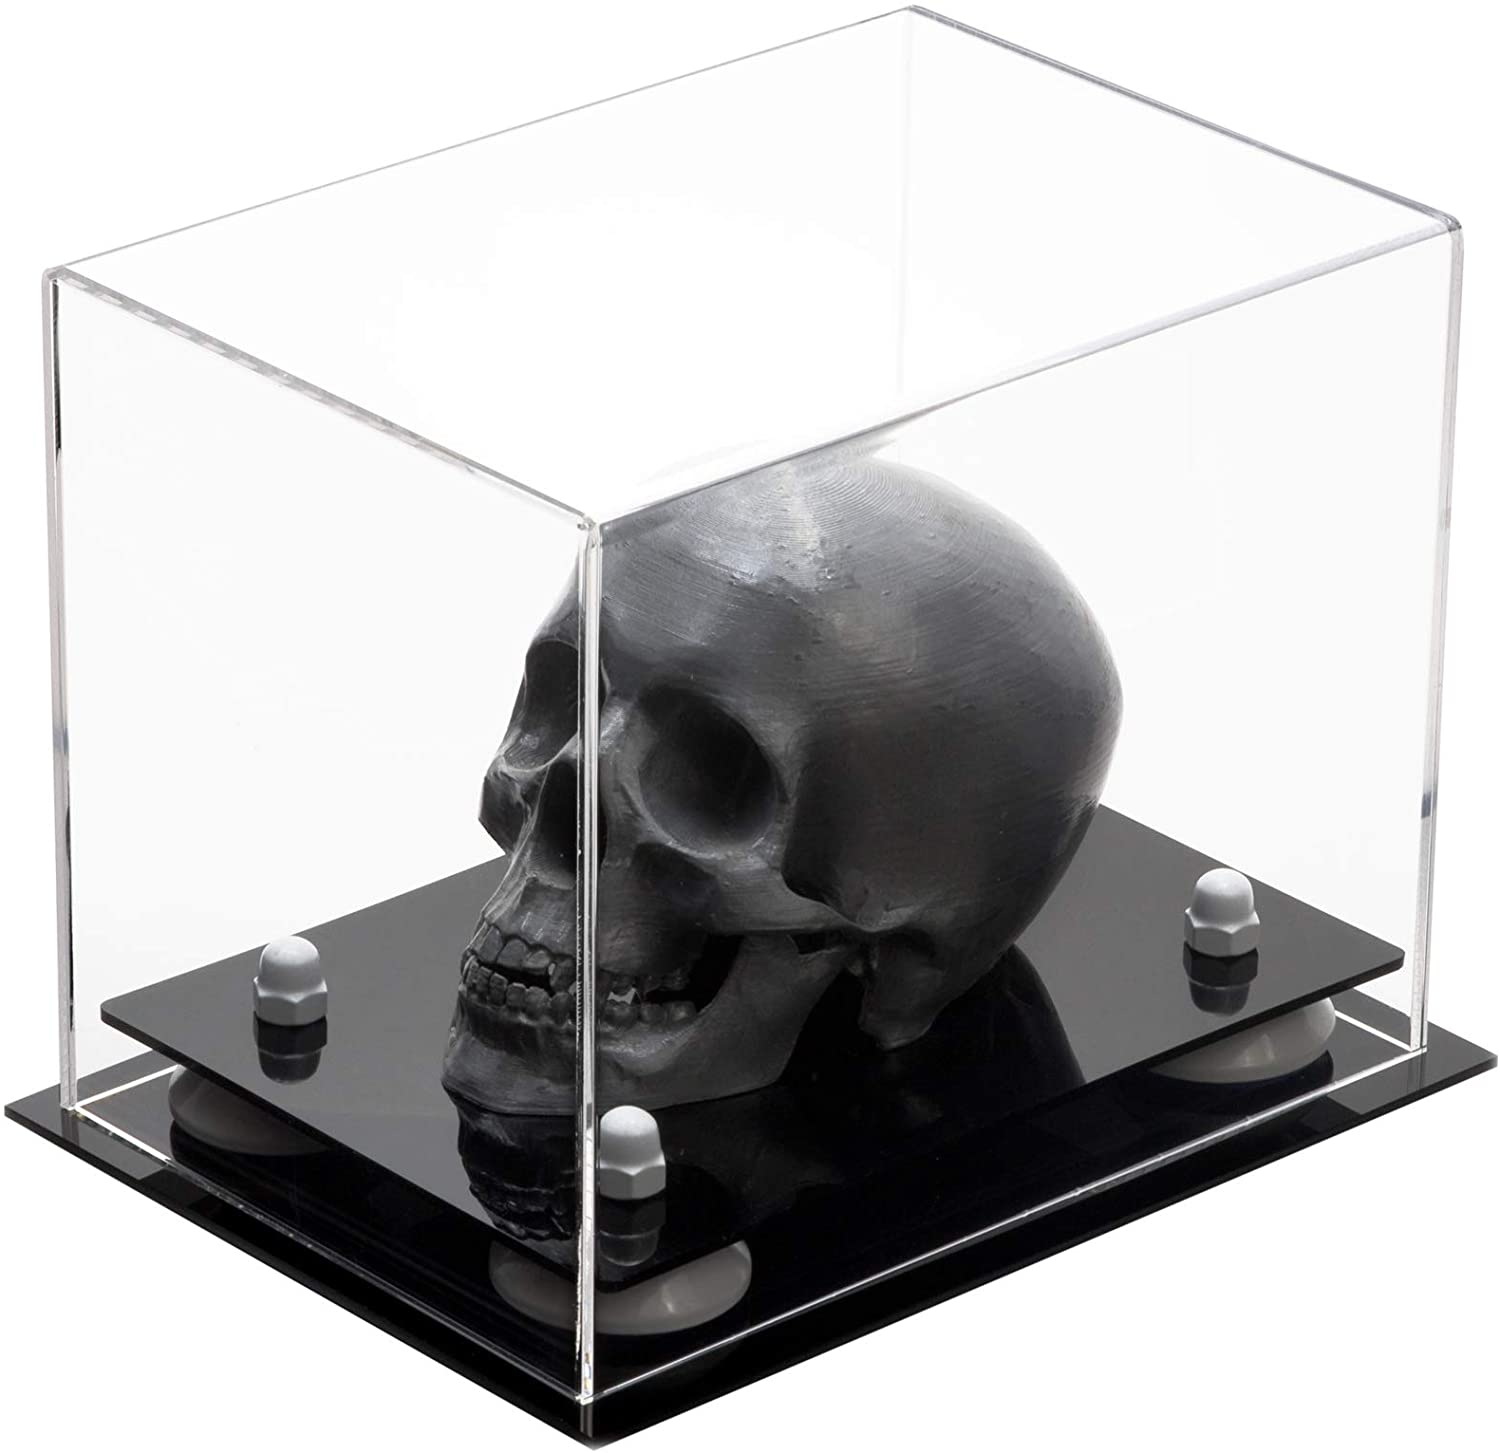 Better Display Cases Versatile Clear Acrylic Display Case - Small Rectangle Box with White Risers 8.25